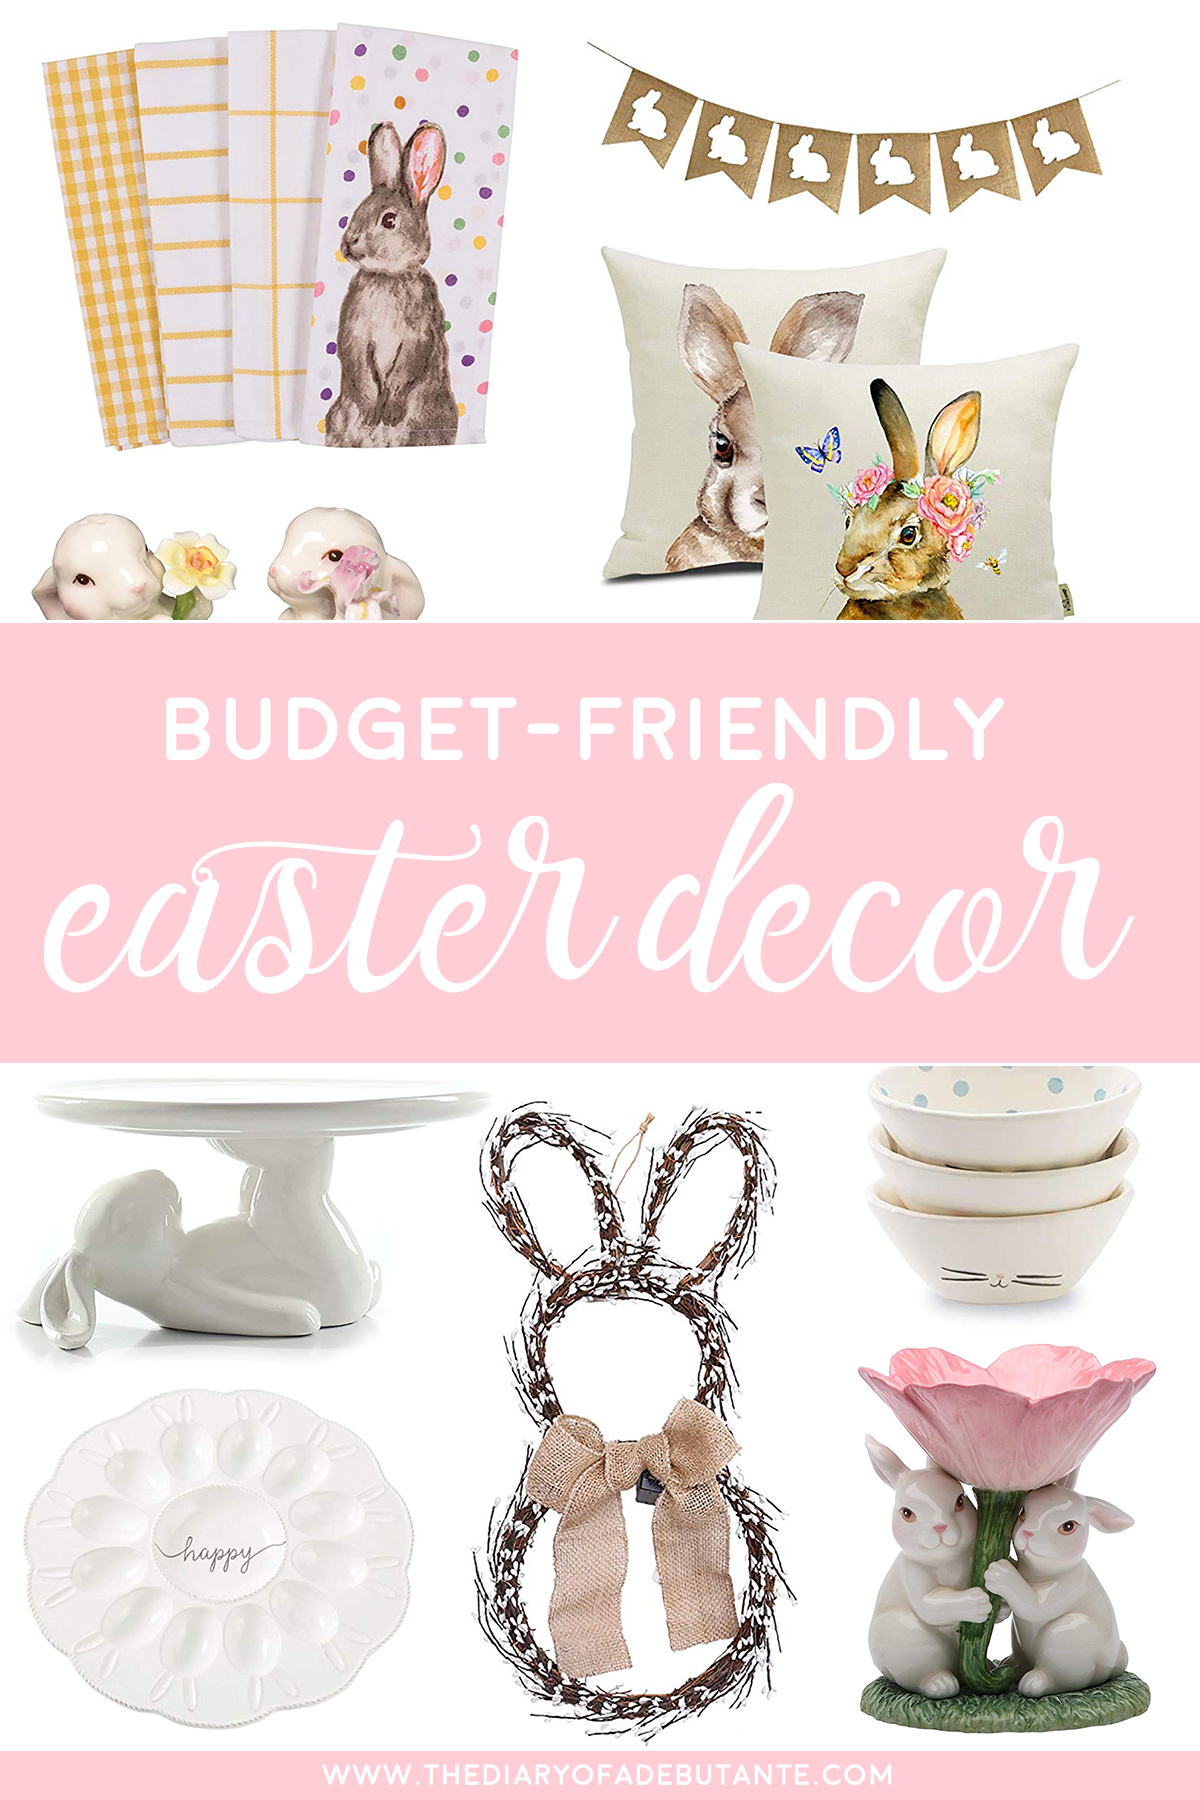 Easter Home Decor: 24 of the Best Easter Decorations on Amazon by affordable southern lifestyle blogger Stephanie Ziajka from Diary of a Debutante, best easter decor finds on amazon, best place to buy easter decorations, modern easter decor